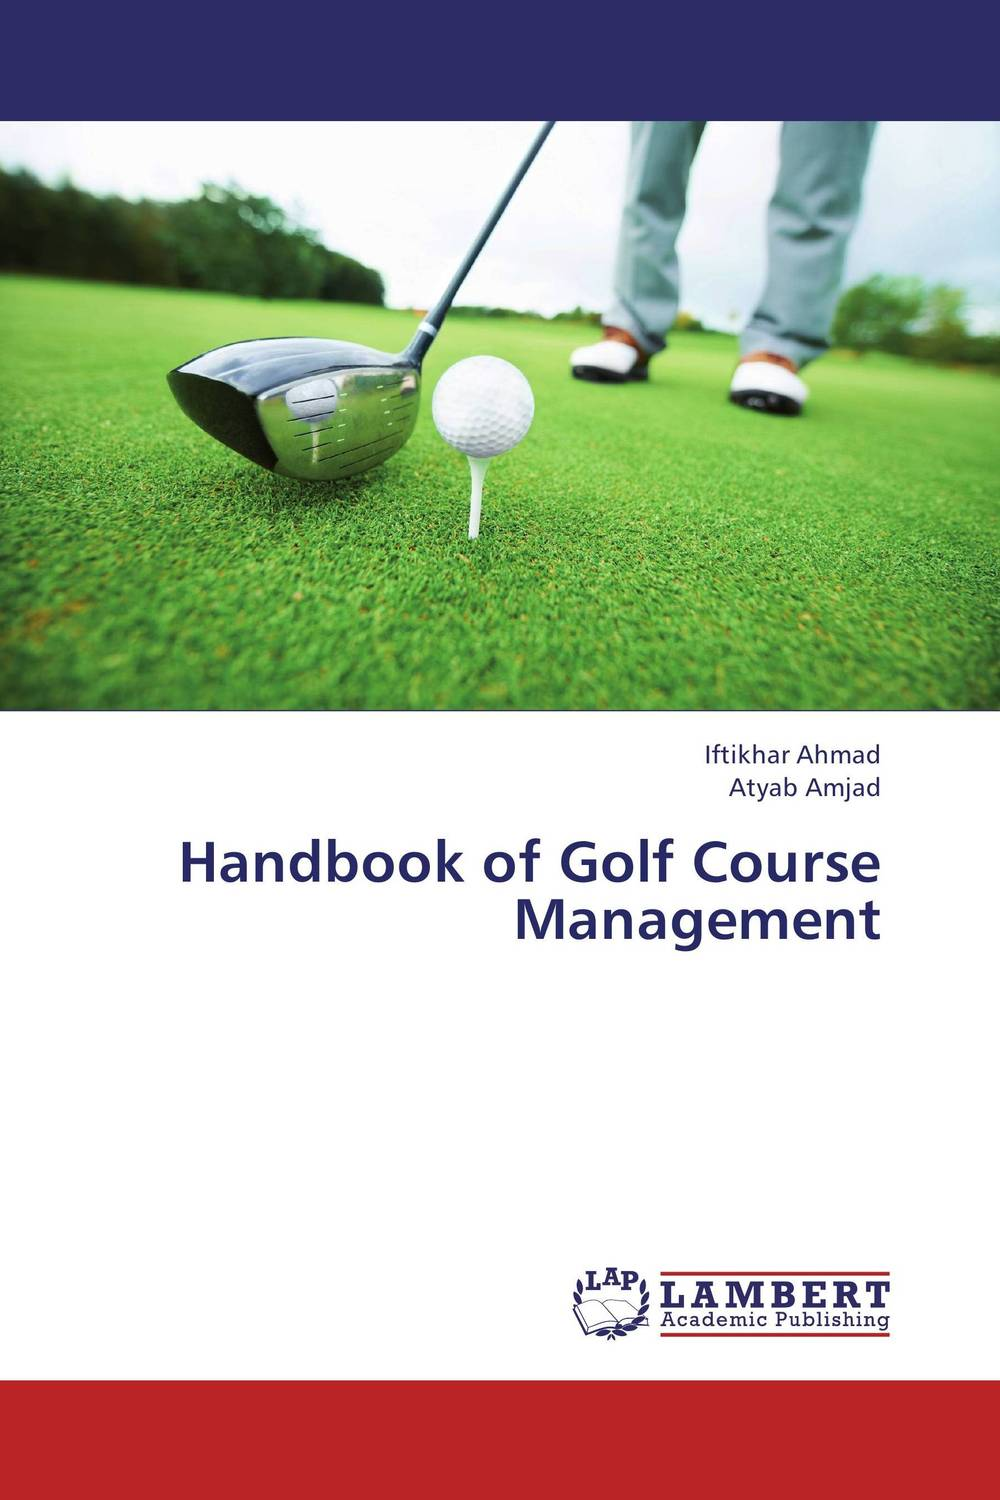 Handbook of Golf Course Management